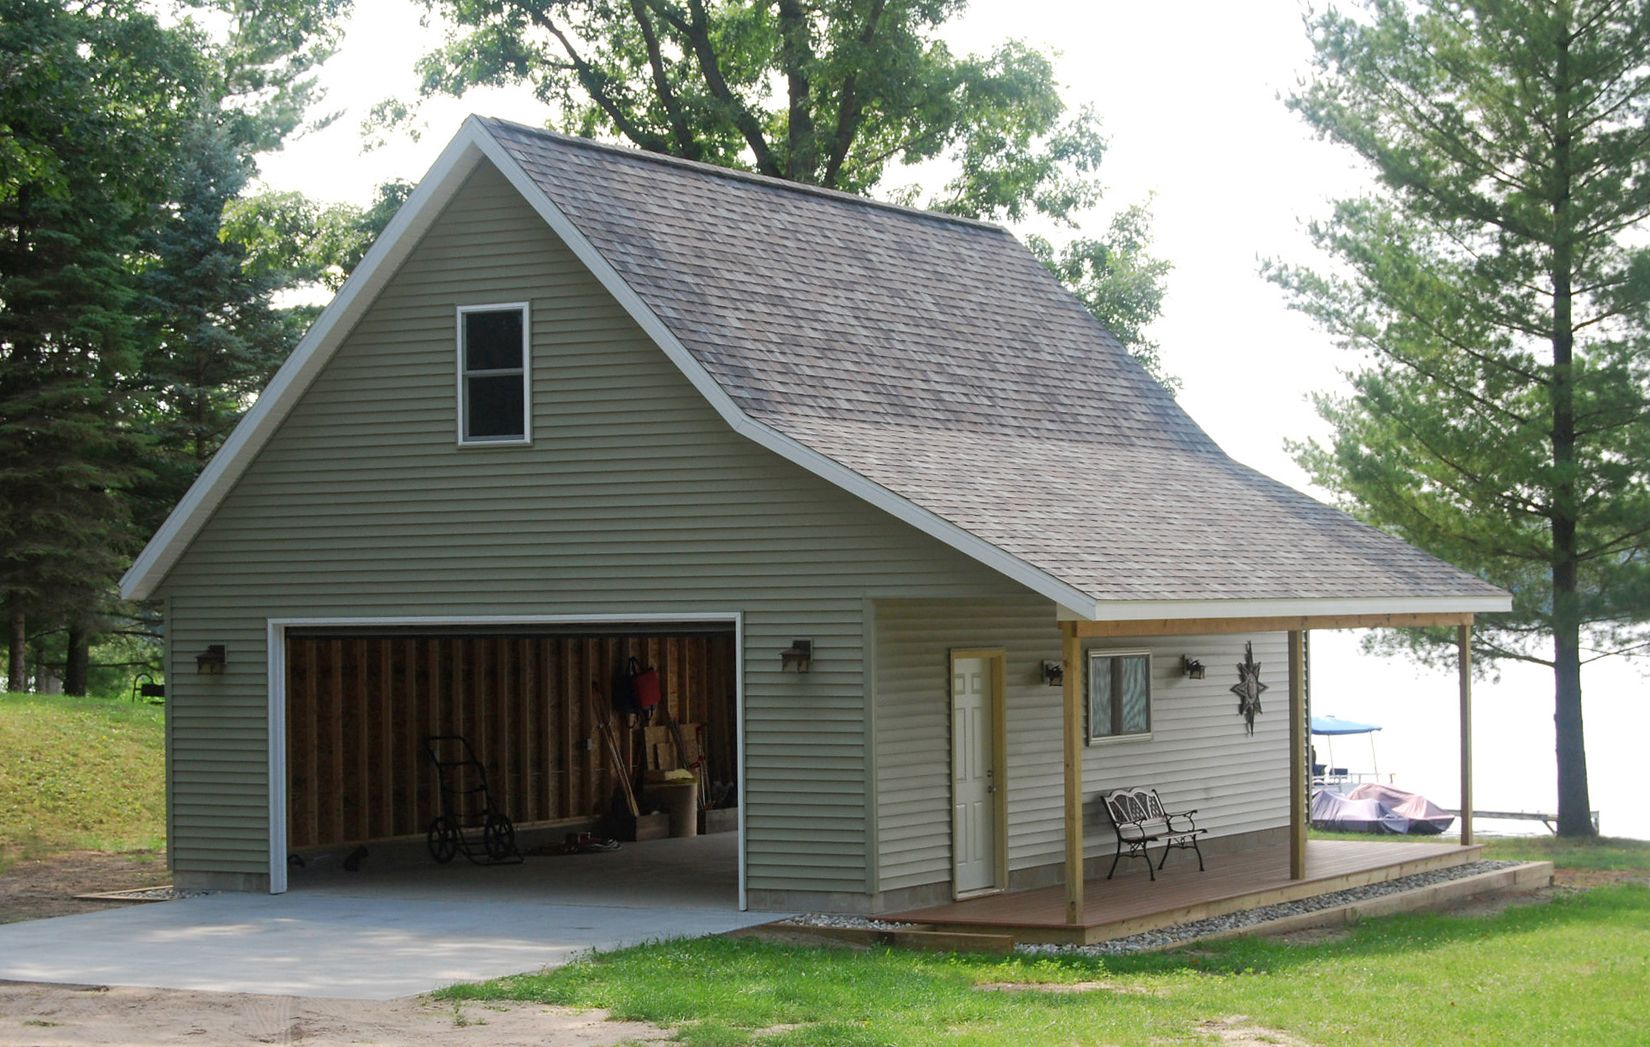 Pole barn garage plans welcome to jb custom homes where for Pole barn shop plans